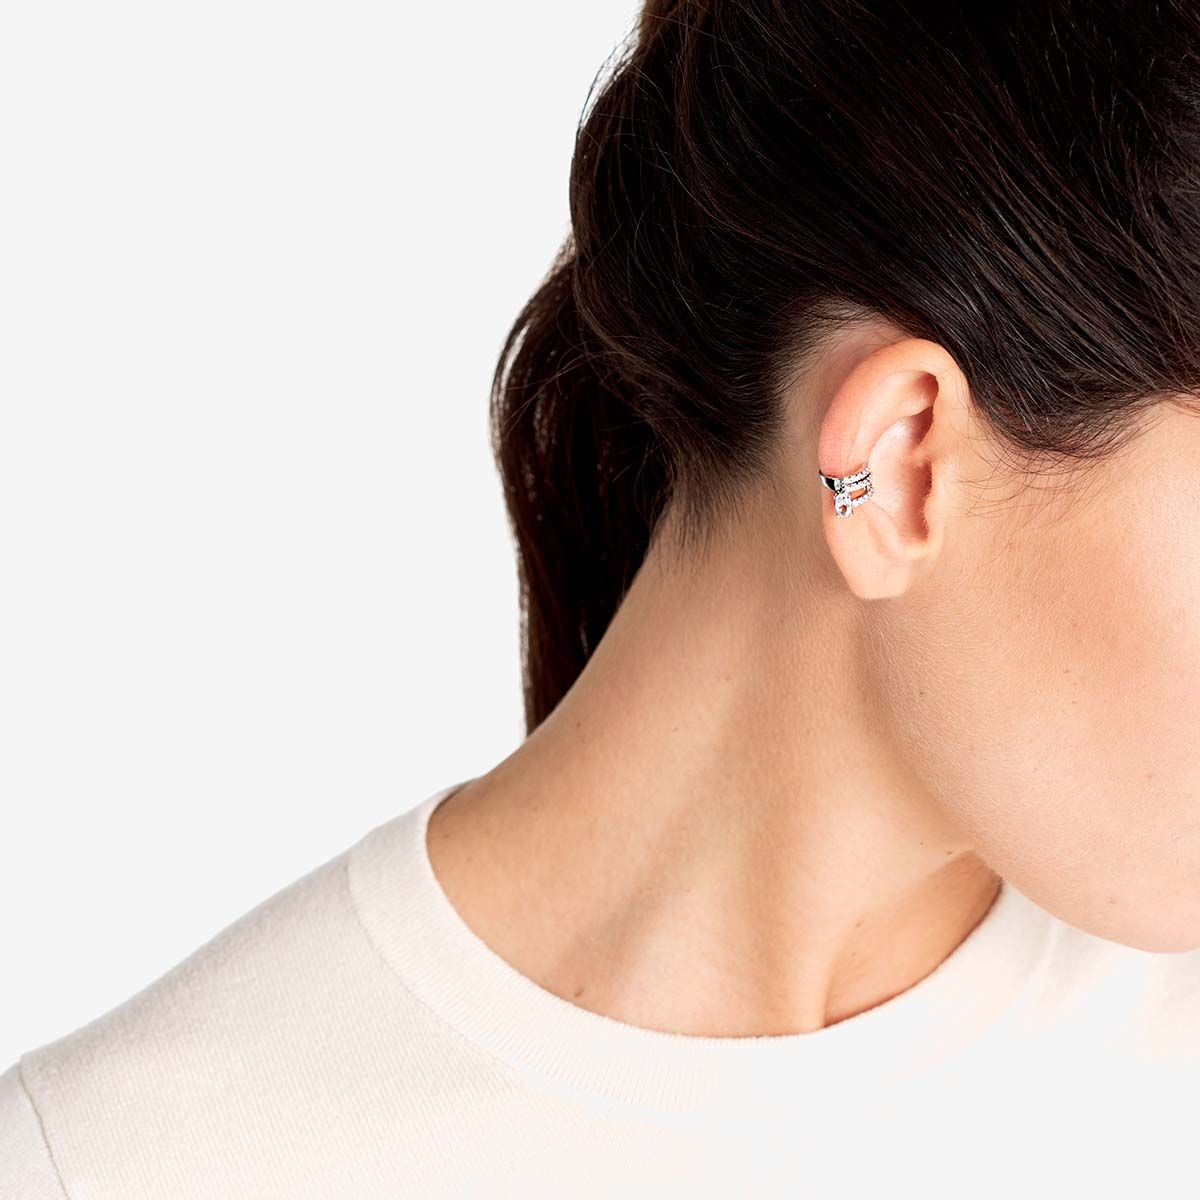 The Ballier Ear Cuff - Earcuffs - 18k vergoldet